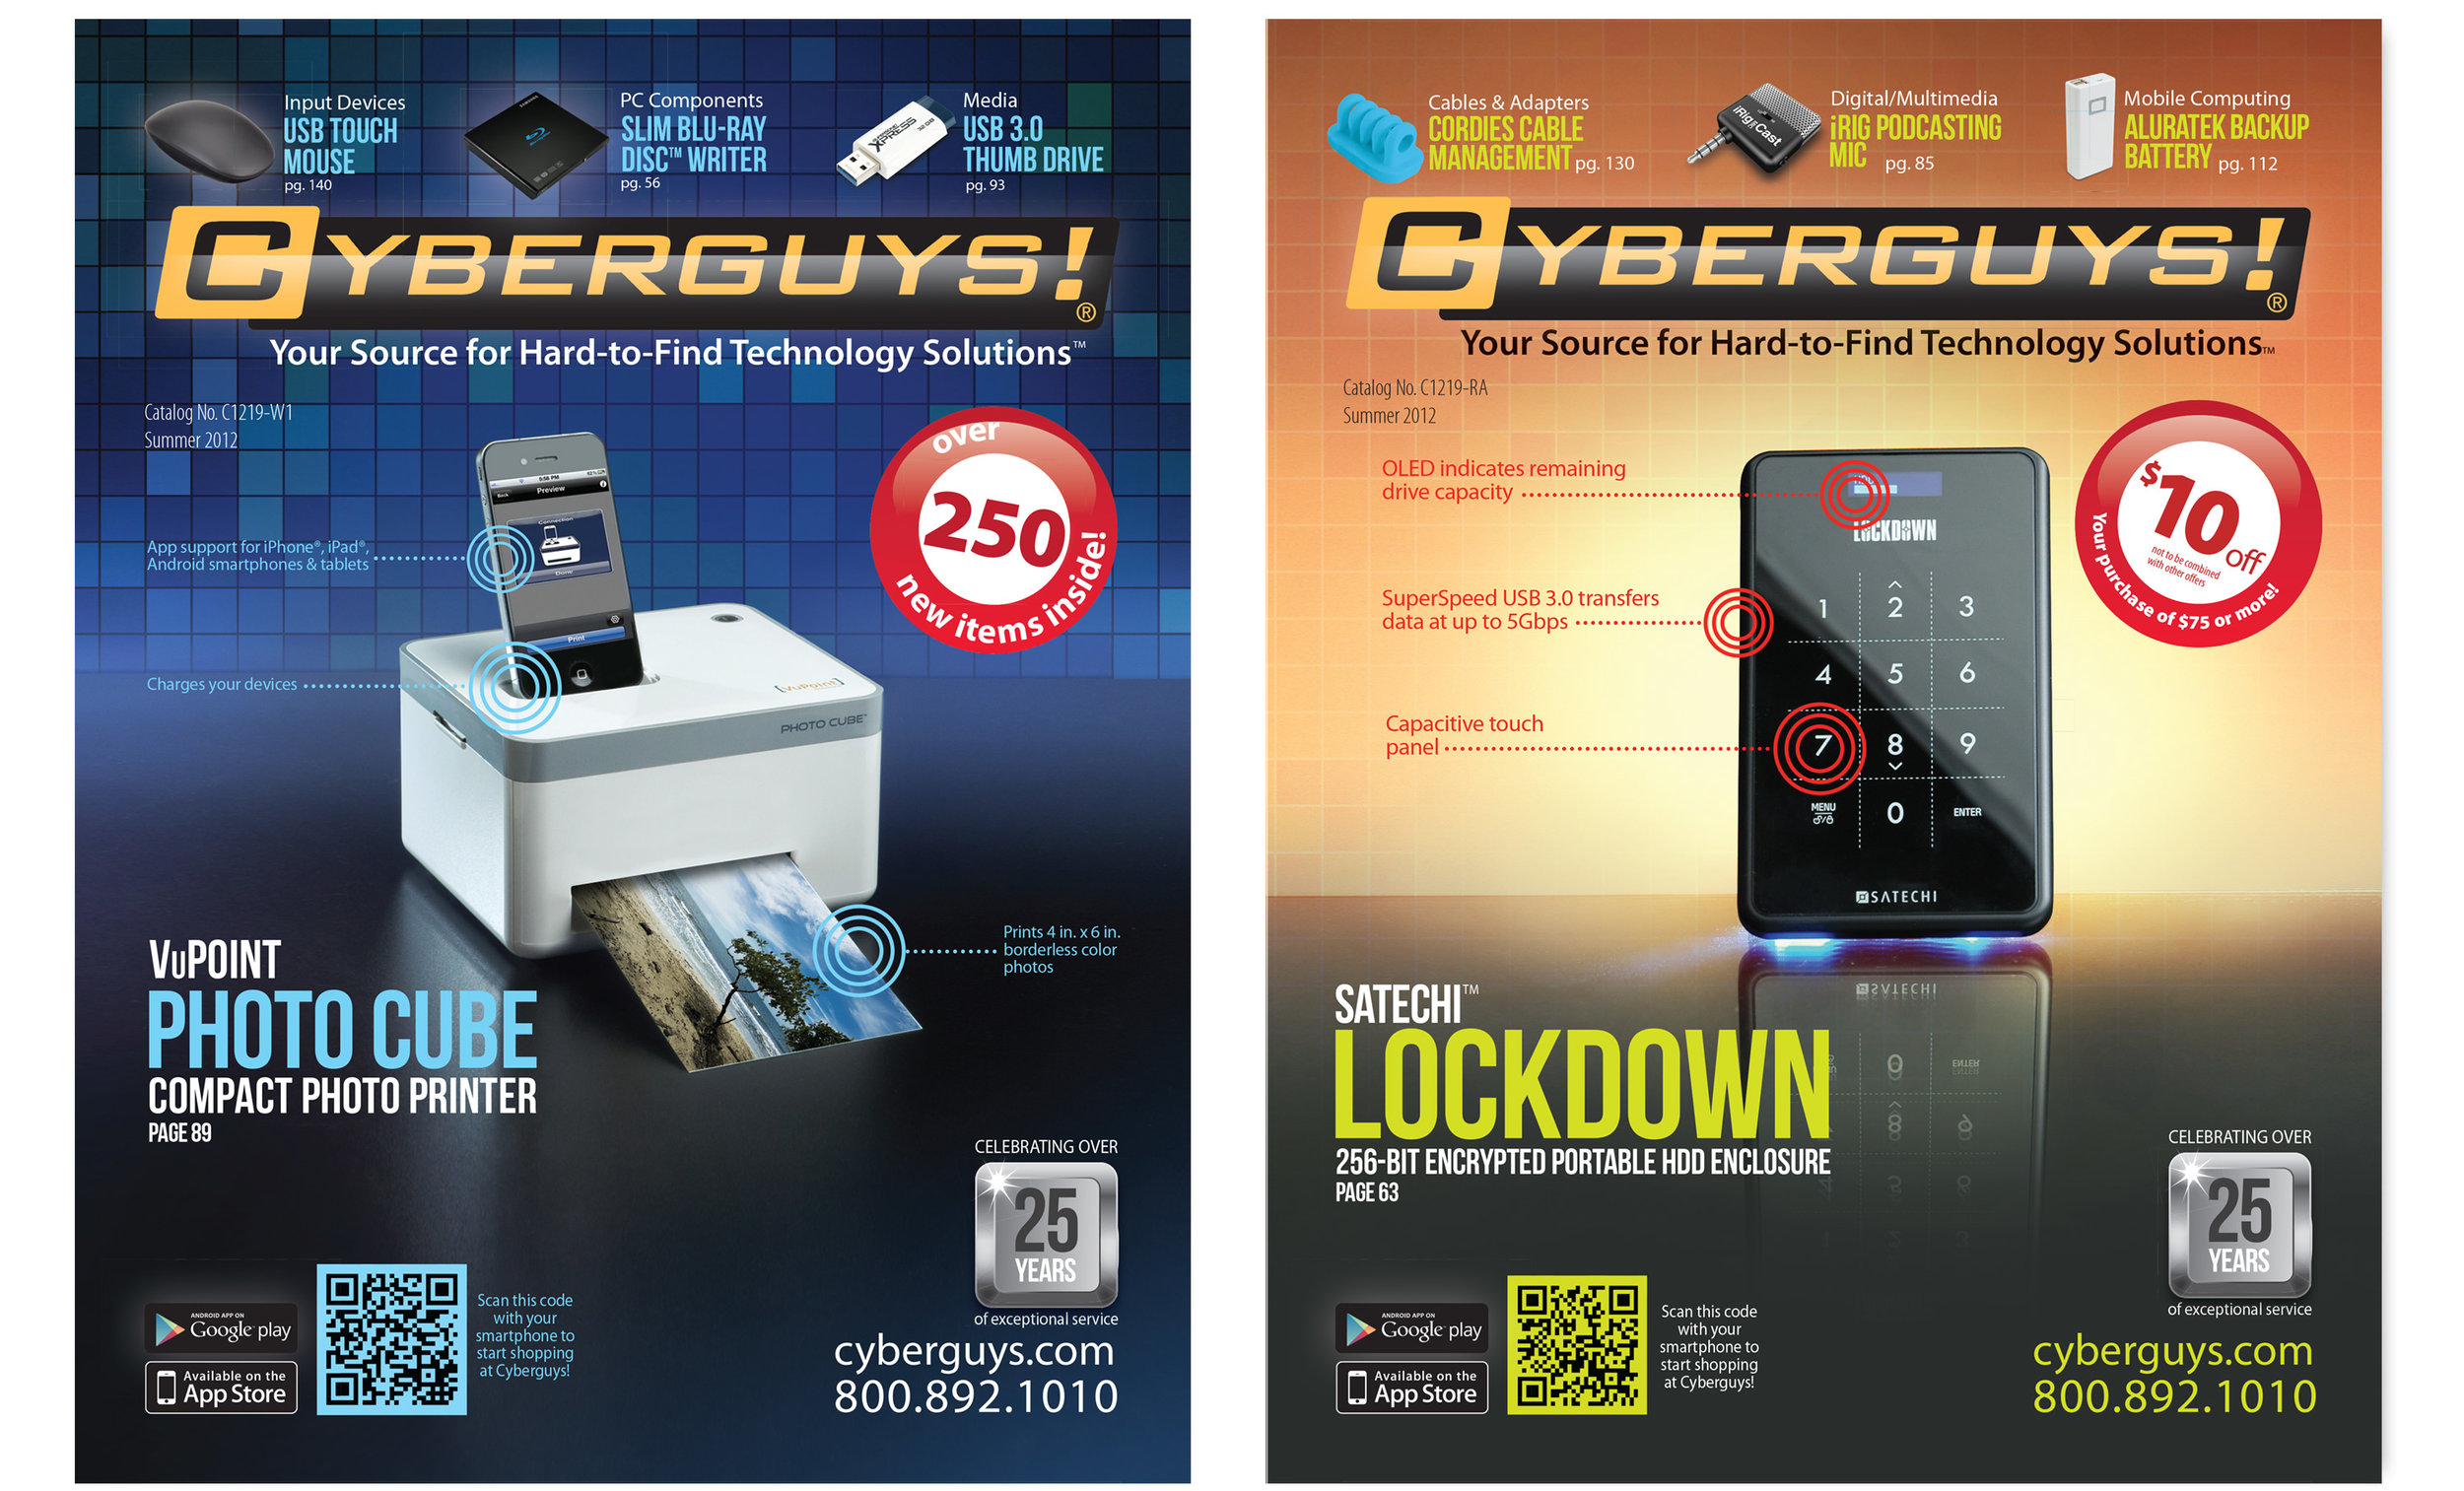 Cyberguys catalog covers. Art direction, photography, and design. © E-filliate Inc.